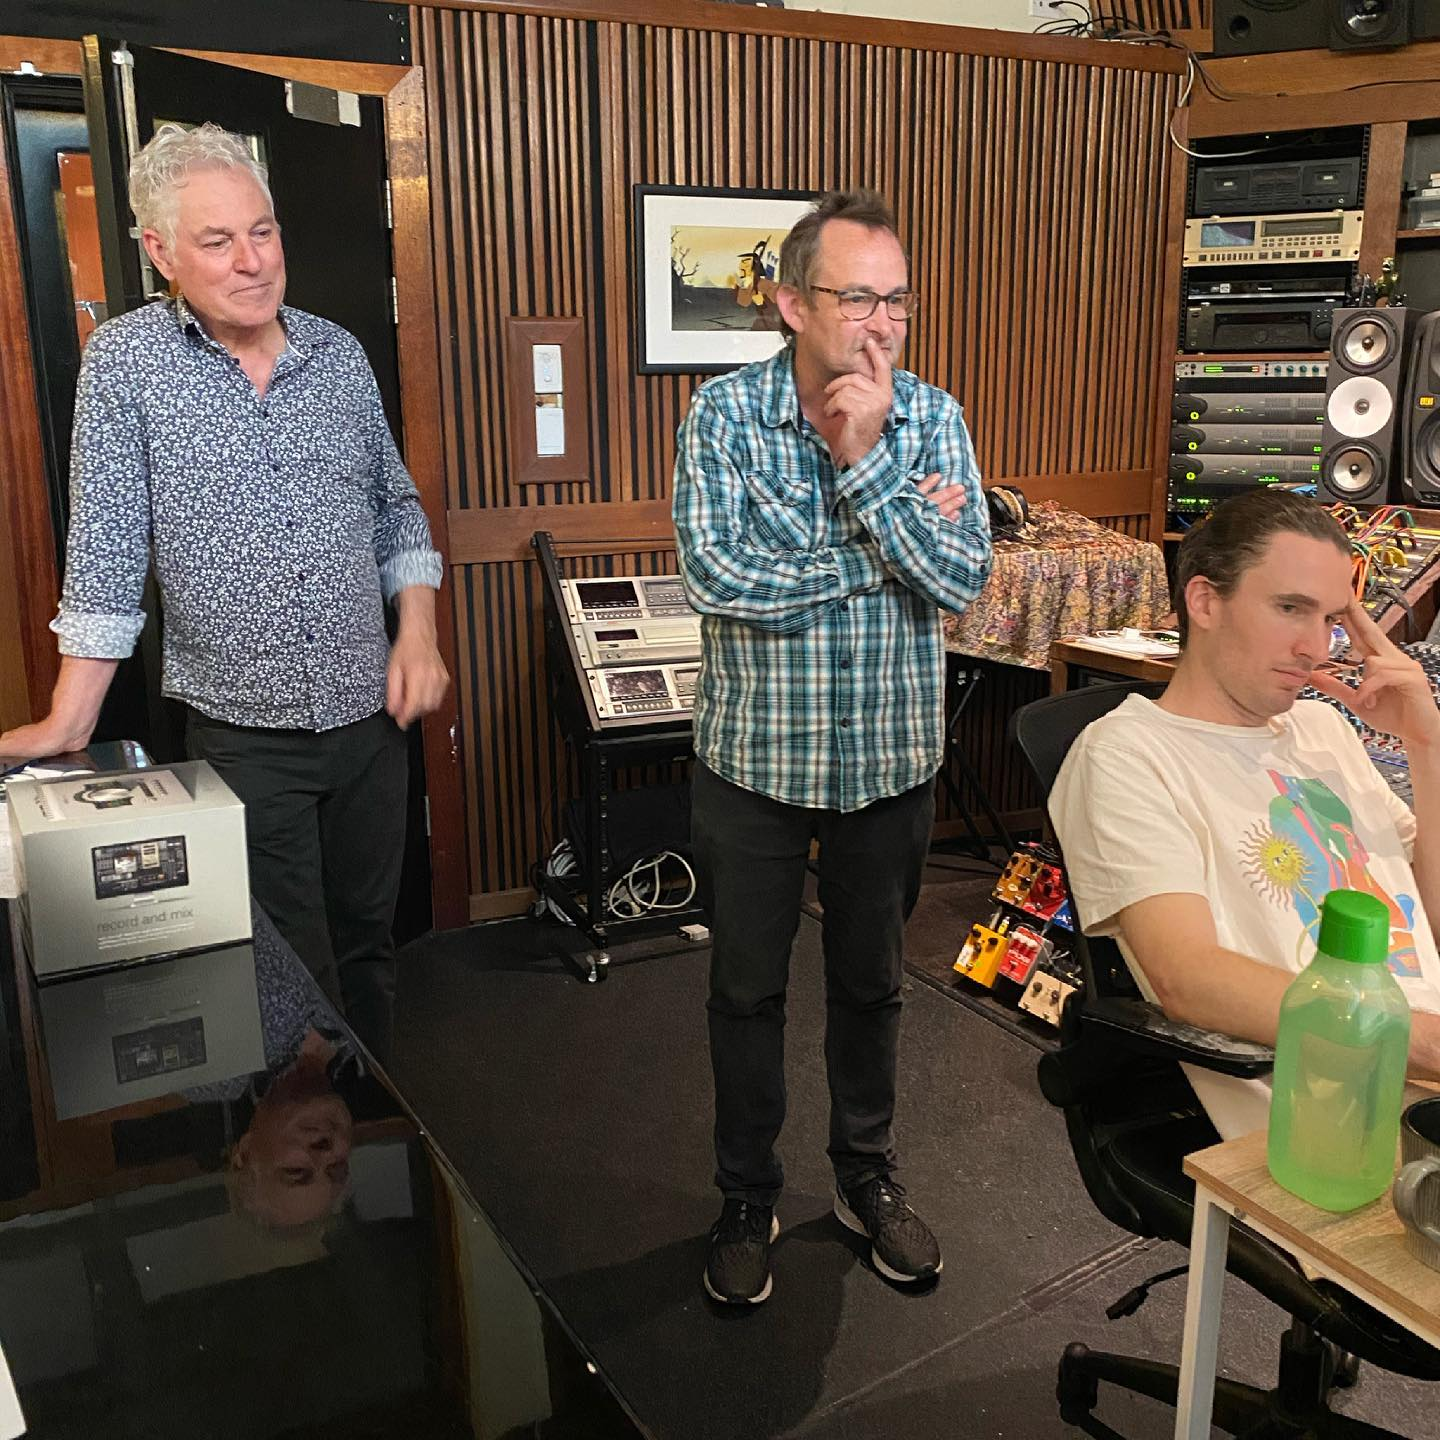 Azure Blue Producer Michael Fix, Co-producer Brendan St Ledger and Engineer Steve Kempnich deep in thought at Airlock.Studios.